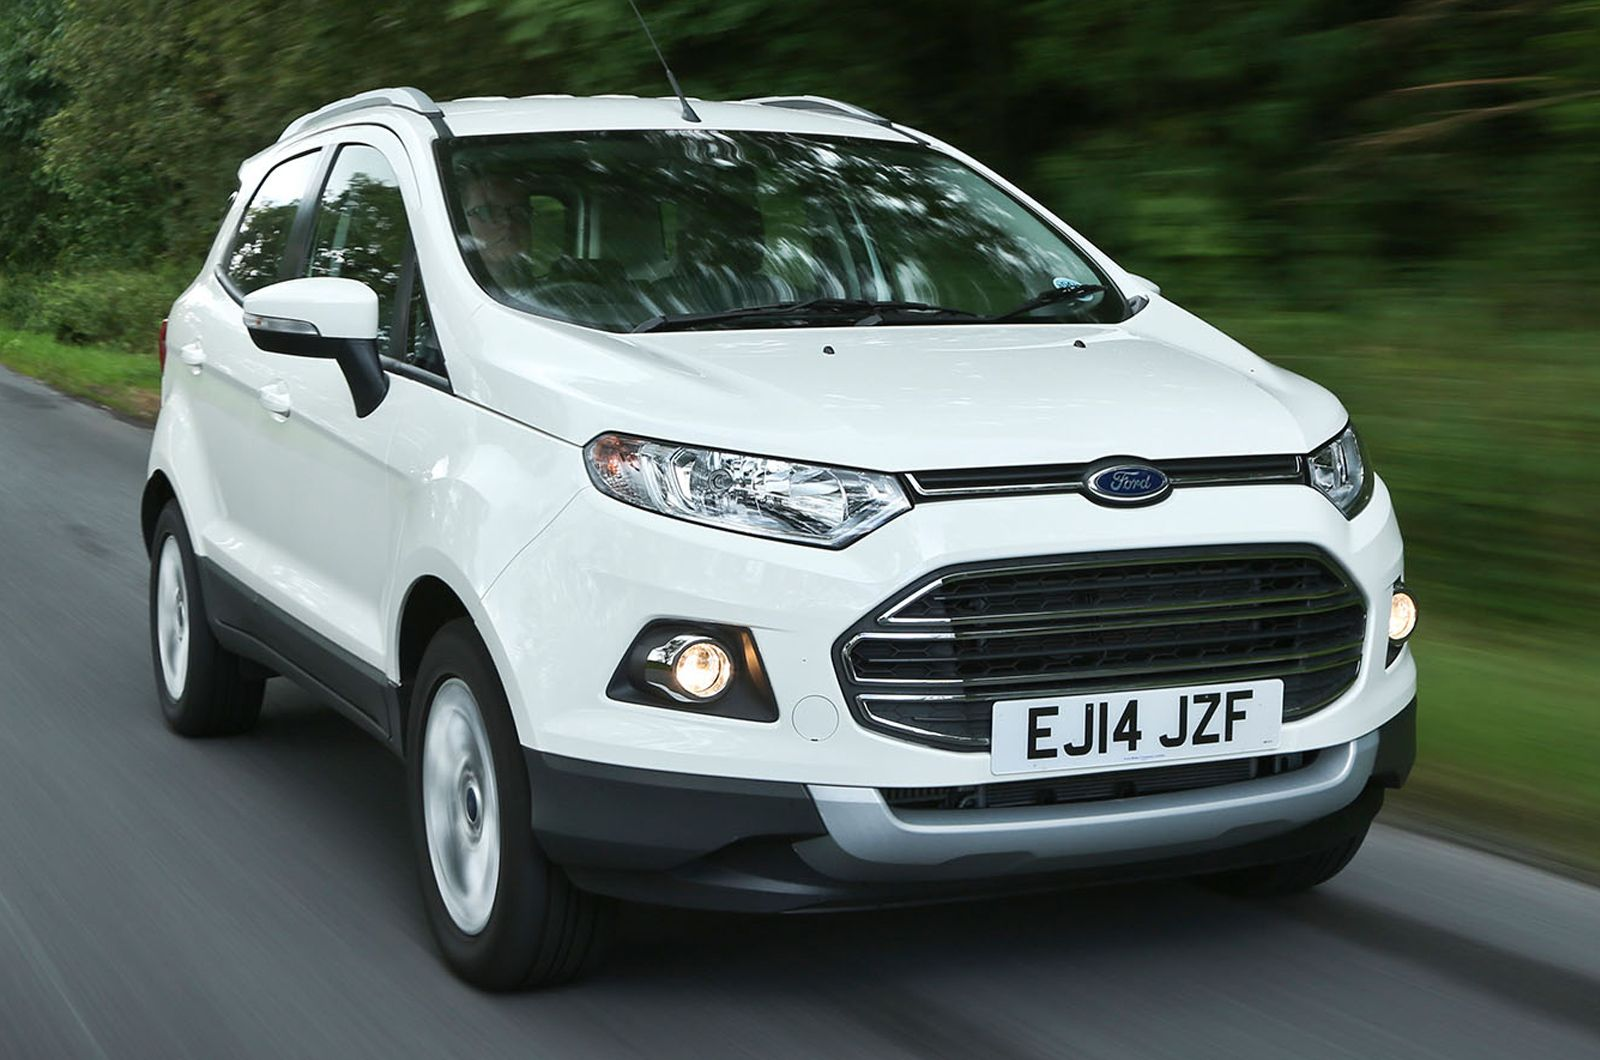 White Ford Ecosport Hd Wallpapers Ford Ecosport Ford Automobile Companies